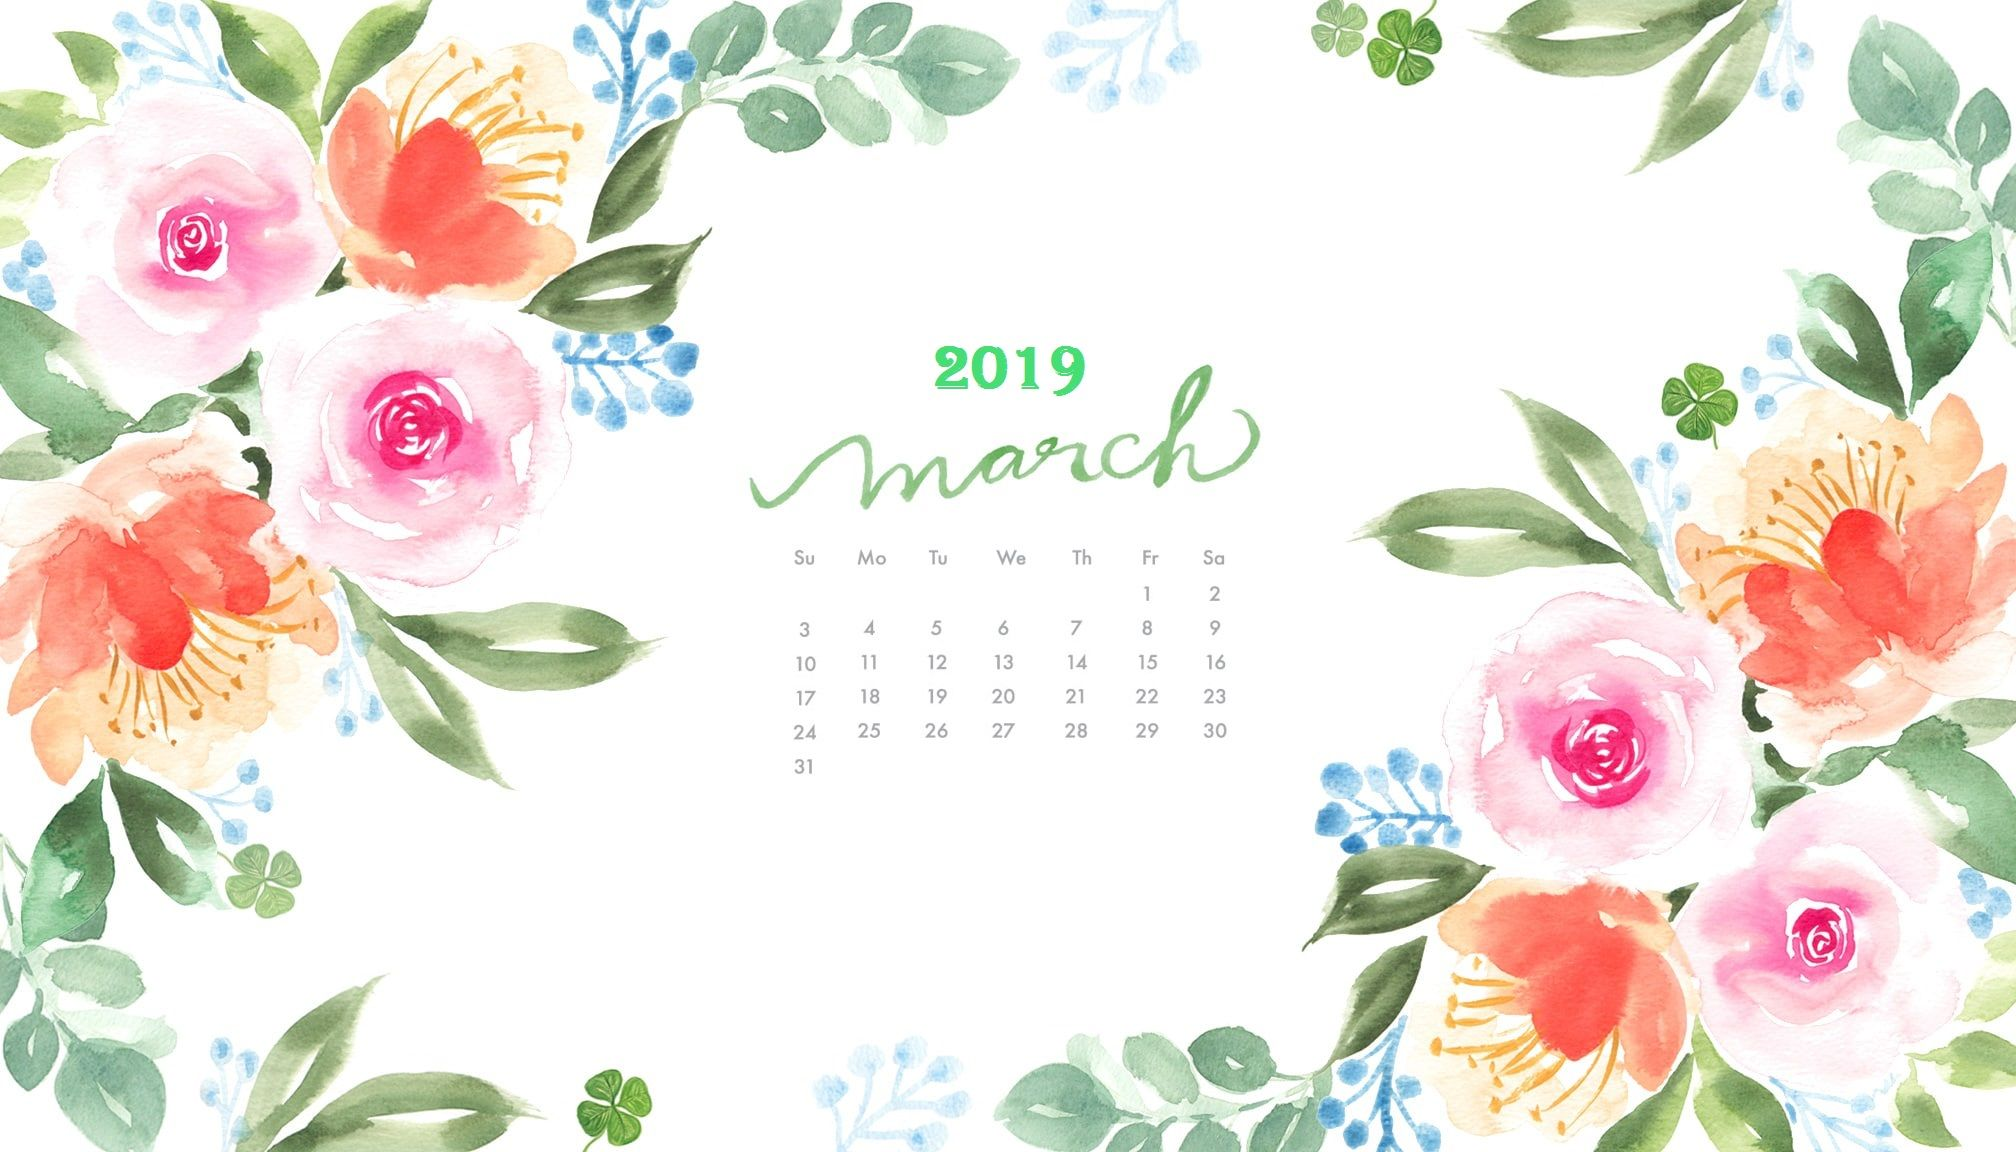 March 2019 Calendar Wallpapers Desktop Wallpaper Calendar